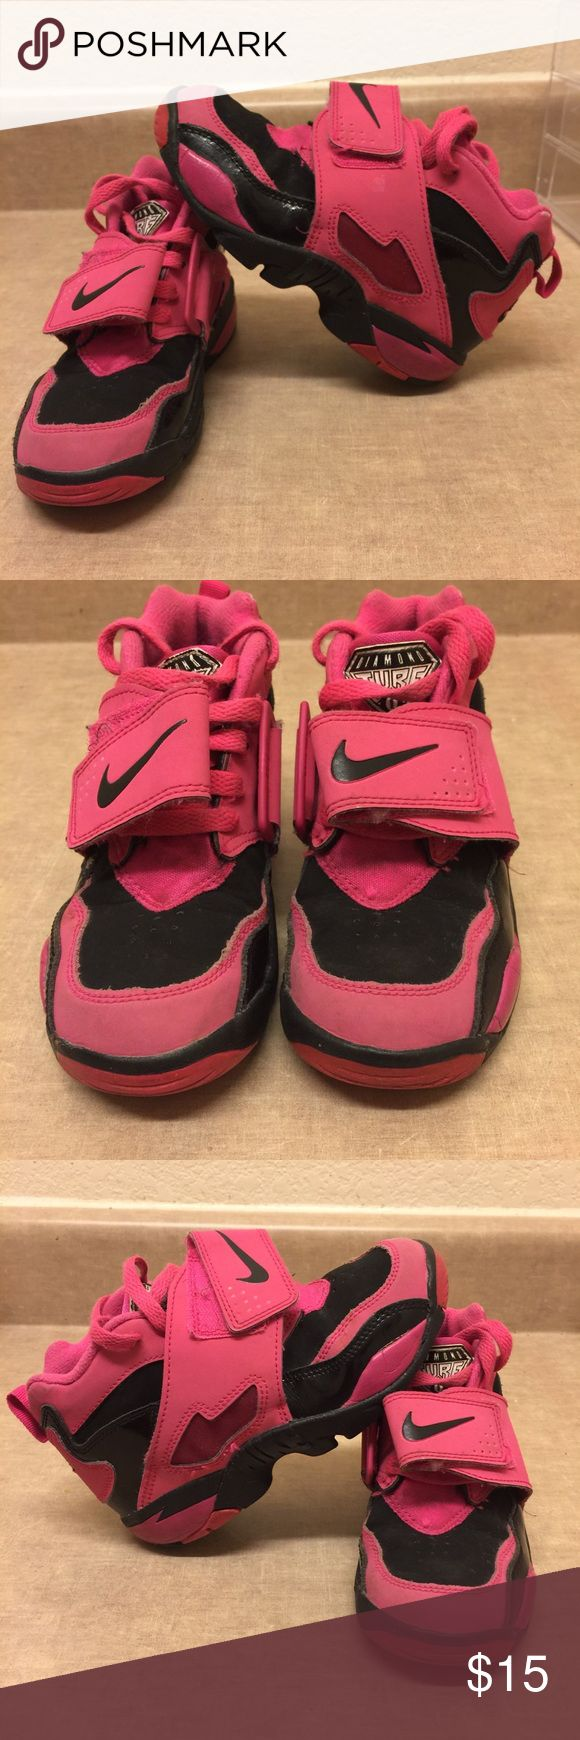 🎀Toddlers Nike Shoes🎀 Girls pink & black Nike shoes are in good condition there are some wears n tears but really not that noticeable see photos of condition! Nike Shoes Sneakers